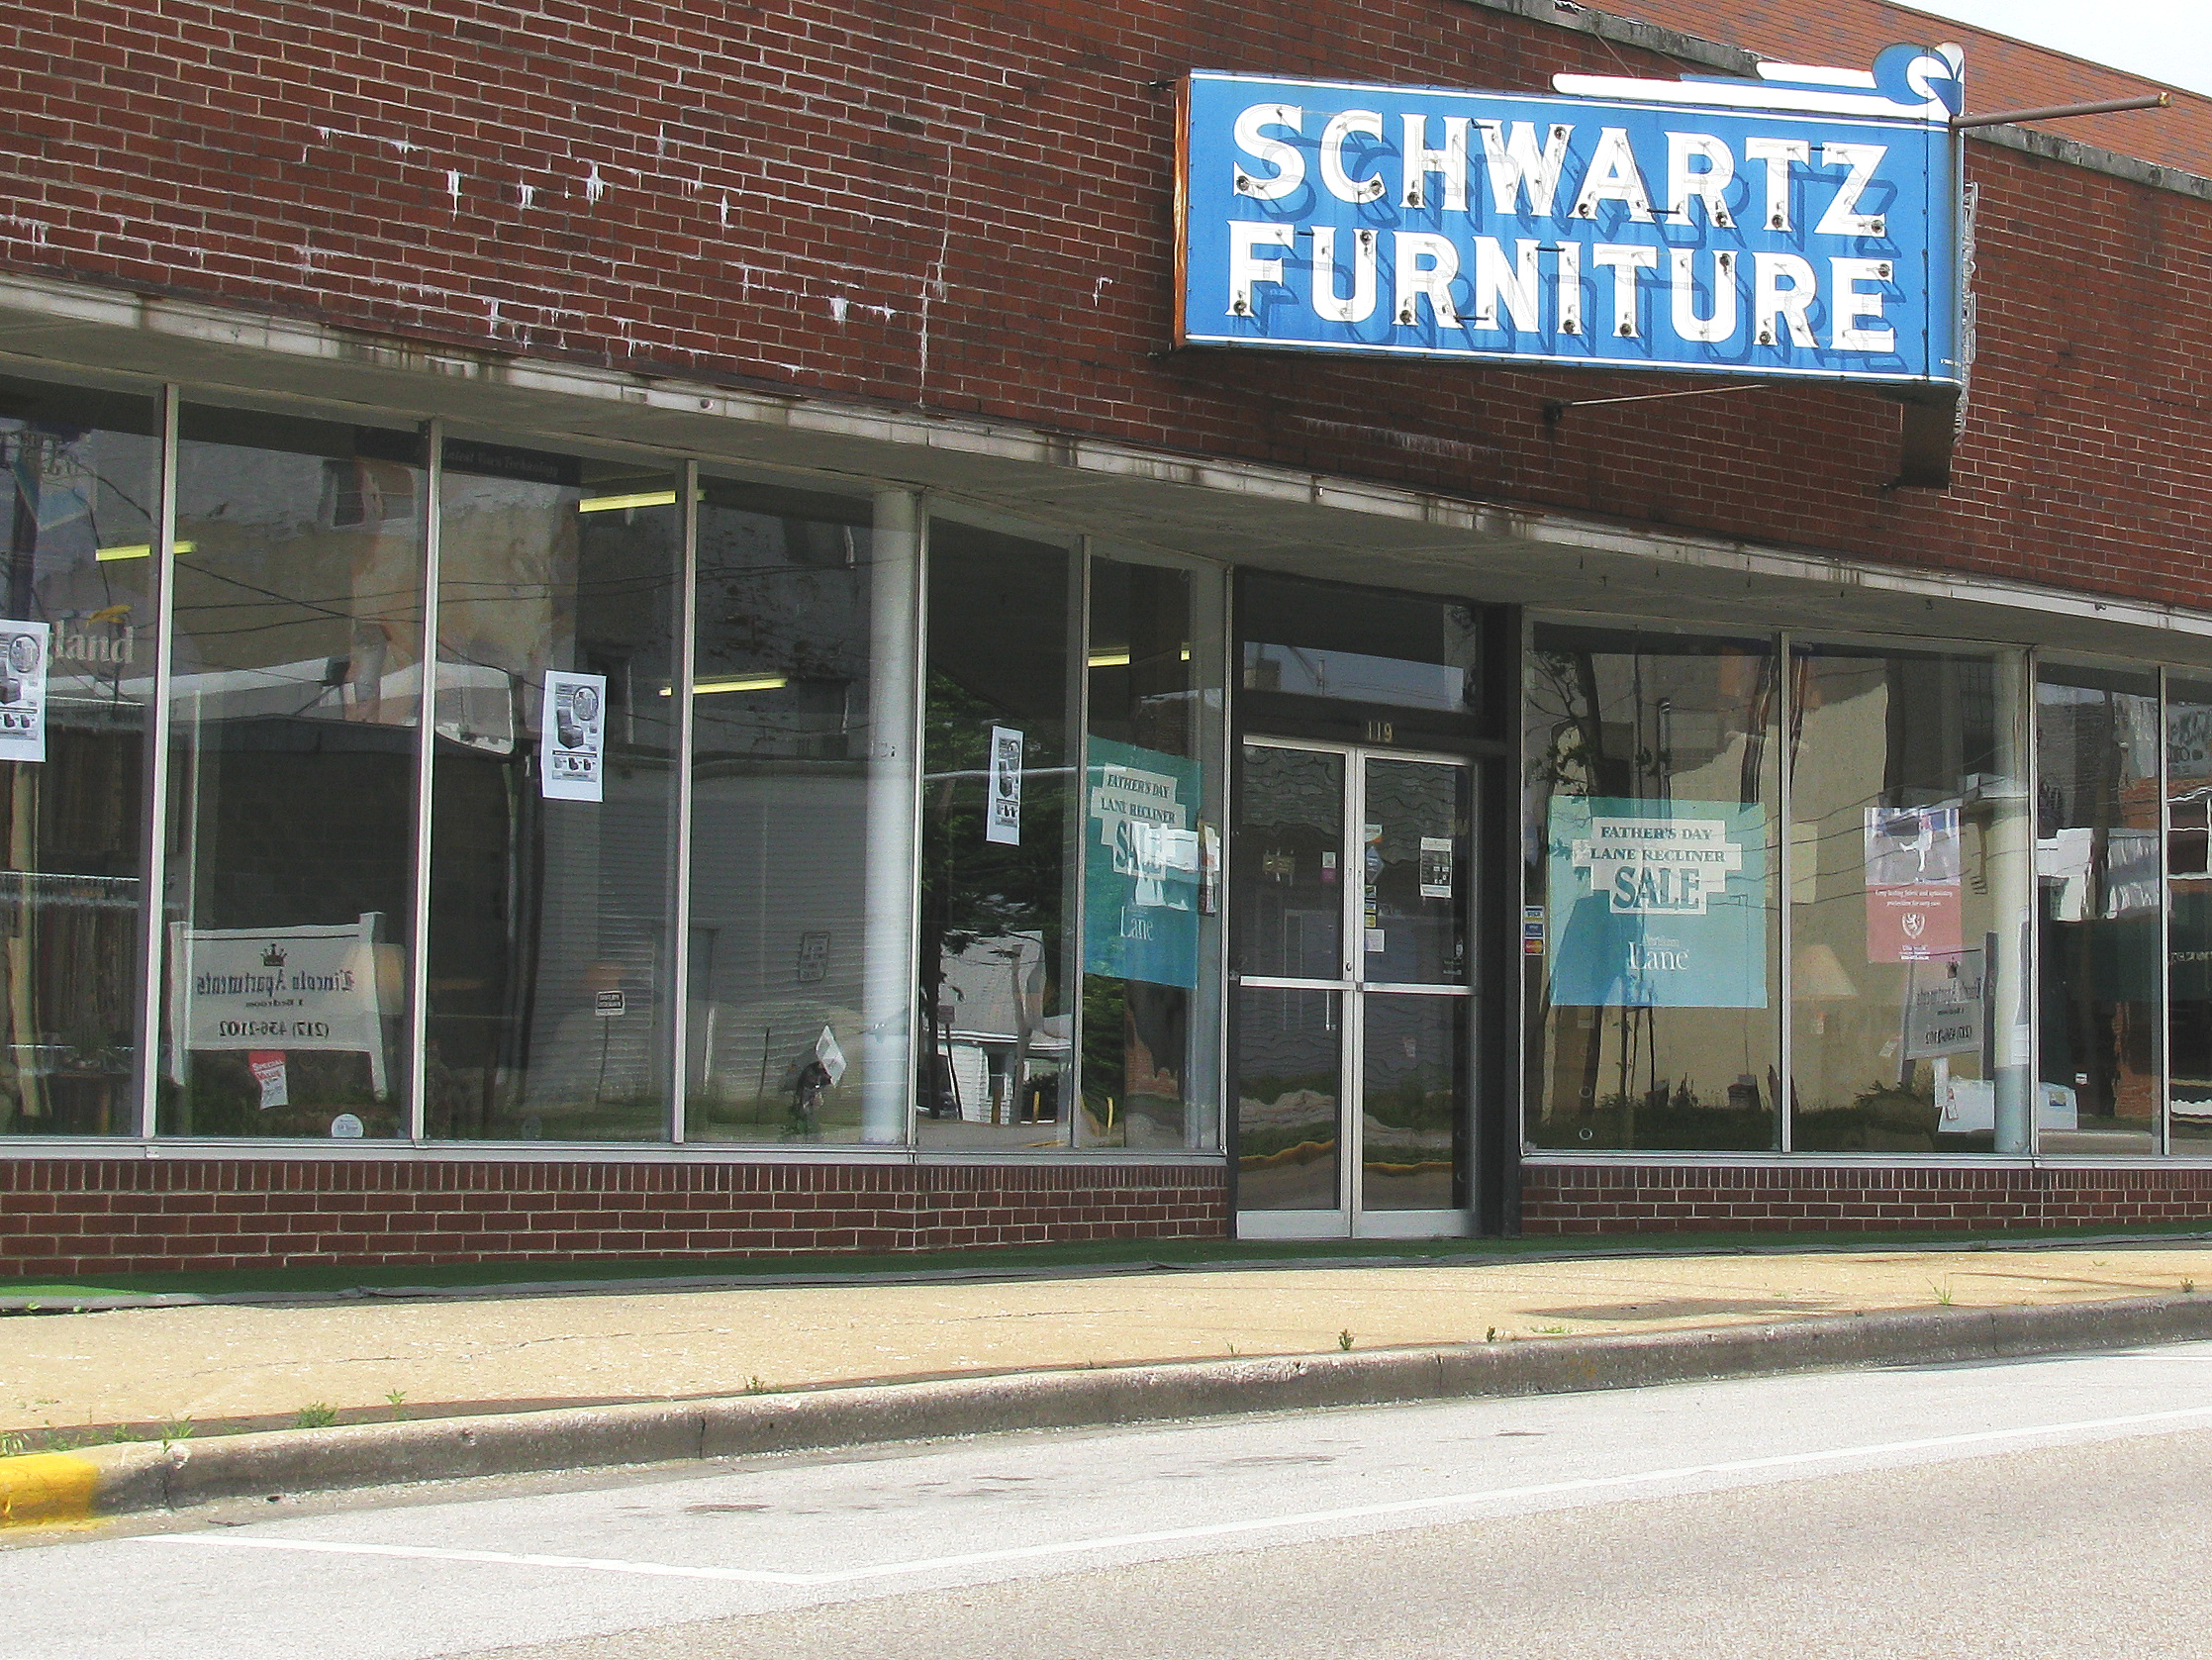 Superieur 14b Carlinville IL   Schwartz Furniture 14b Carlinville IL   Schwartz  Furniture | Flickr   Photo Sharing!